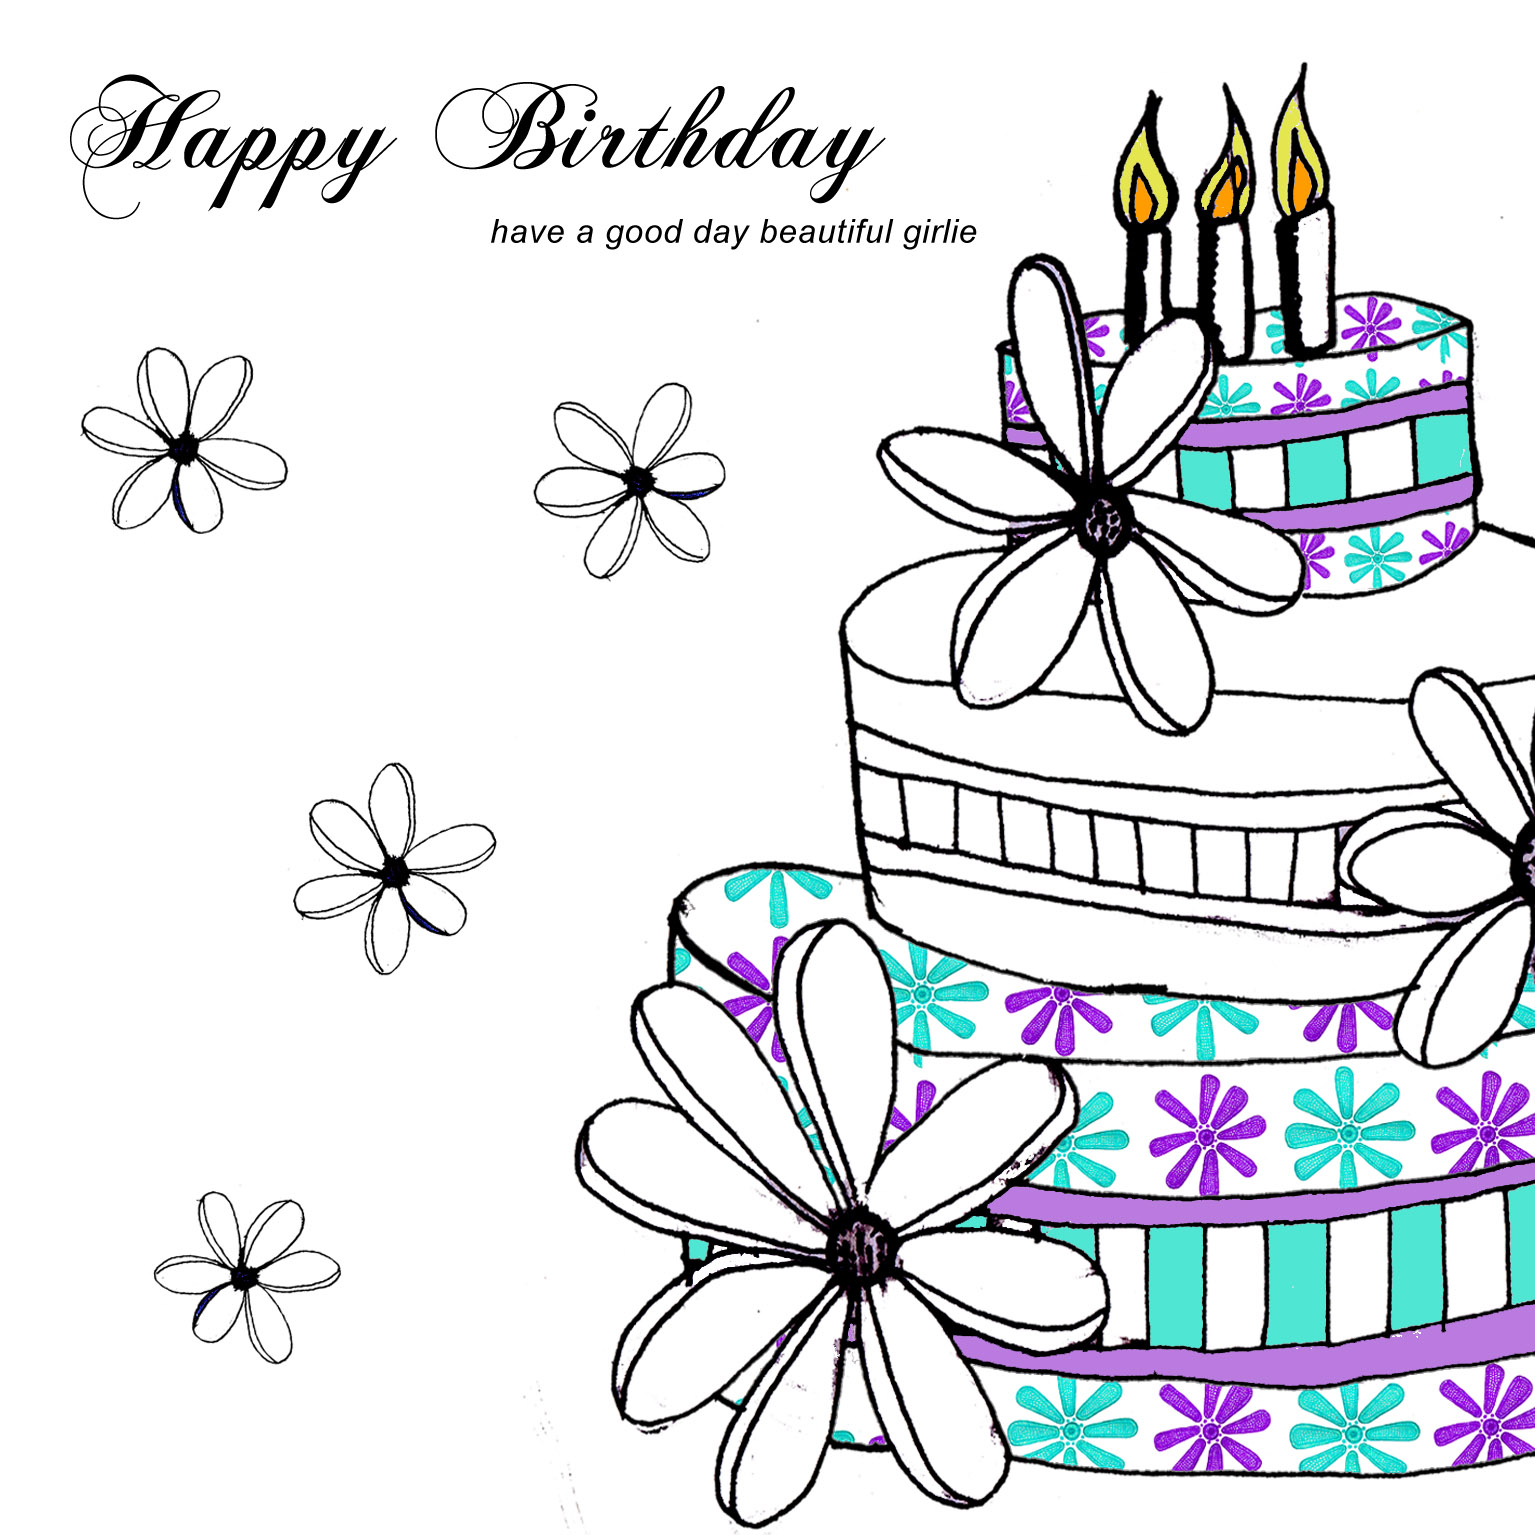 Happy Birthday Drawing Designs At Getdrawings Com Free For